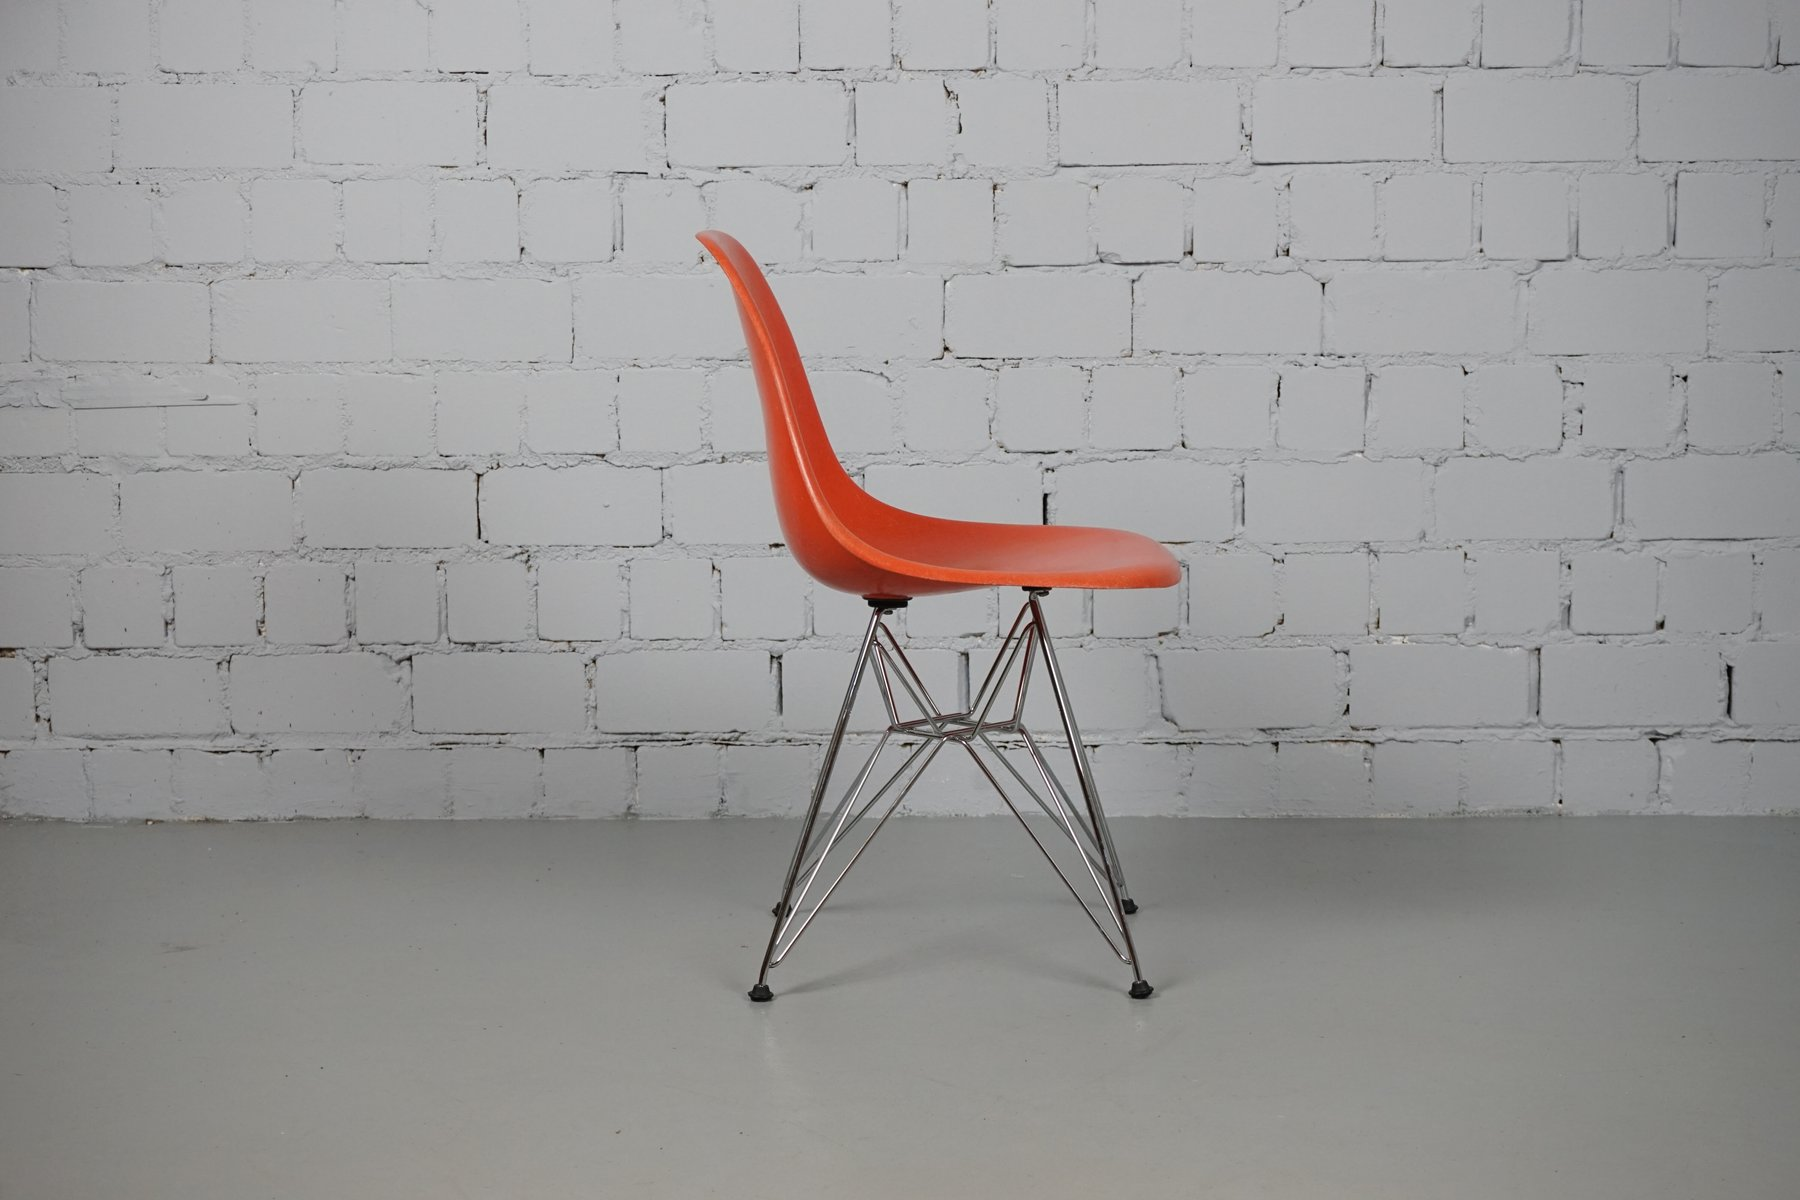 Vintage dsr chair by charles ray eames for vitra for for Eames chair nachbau deutschland